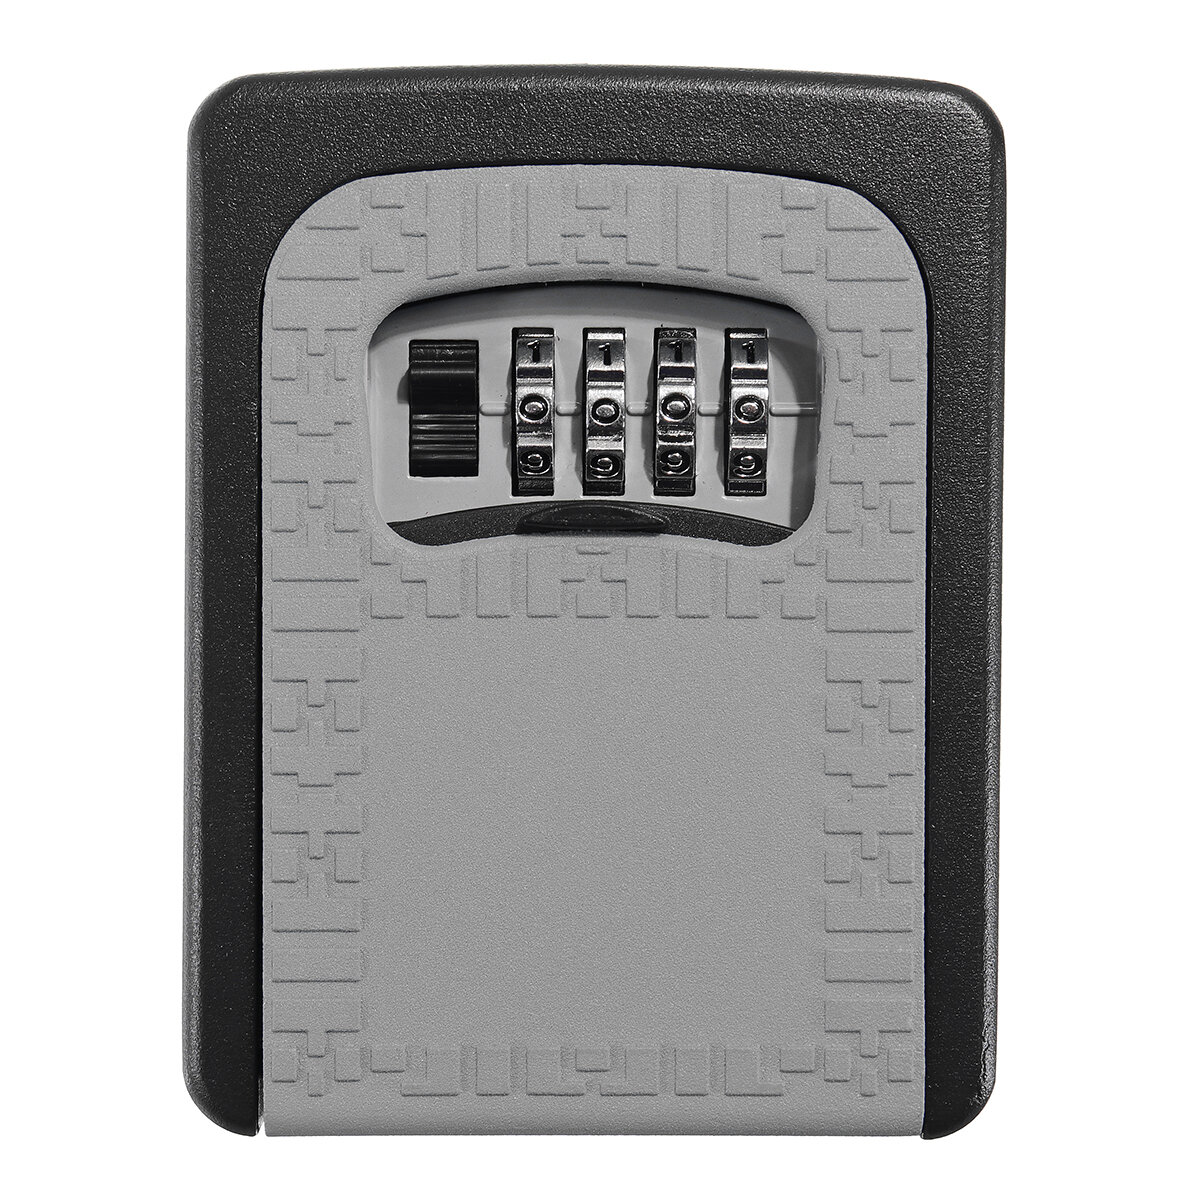 4 Digit Combination Wall Mounted Key Safe Key Box Secure Lock Safety Key Outdoor